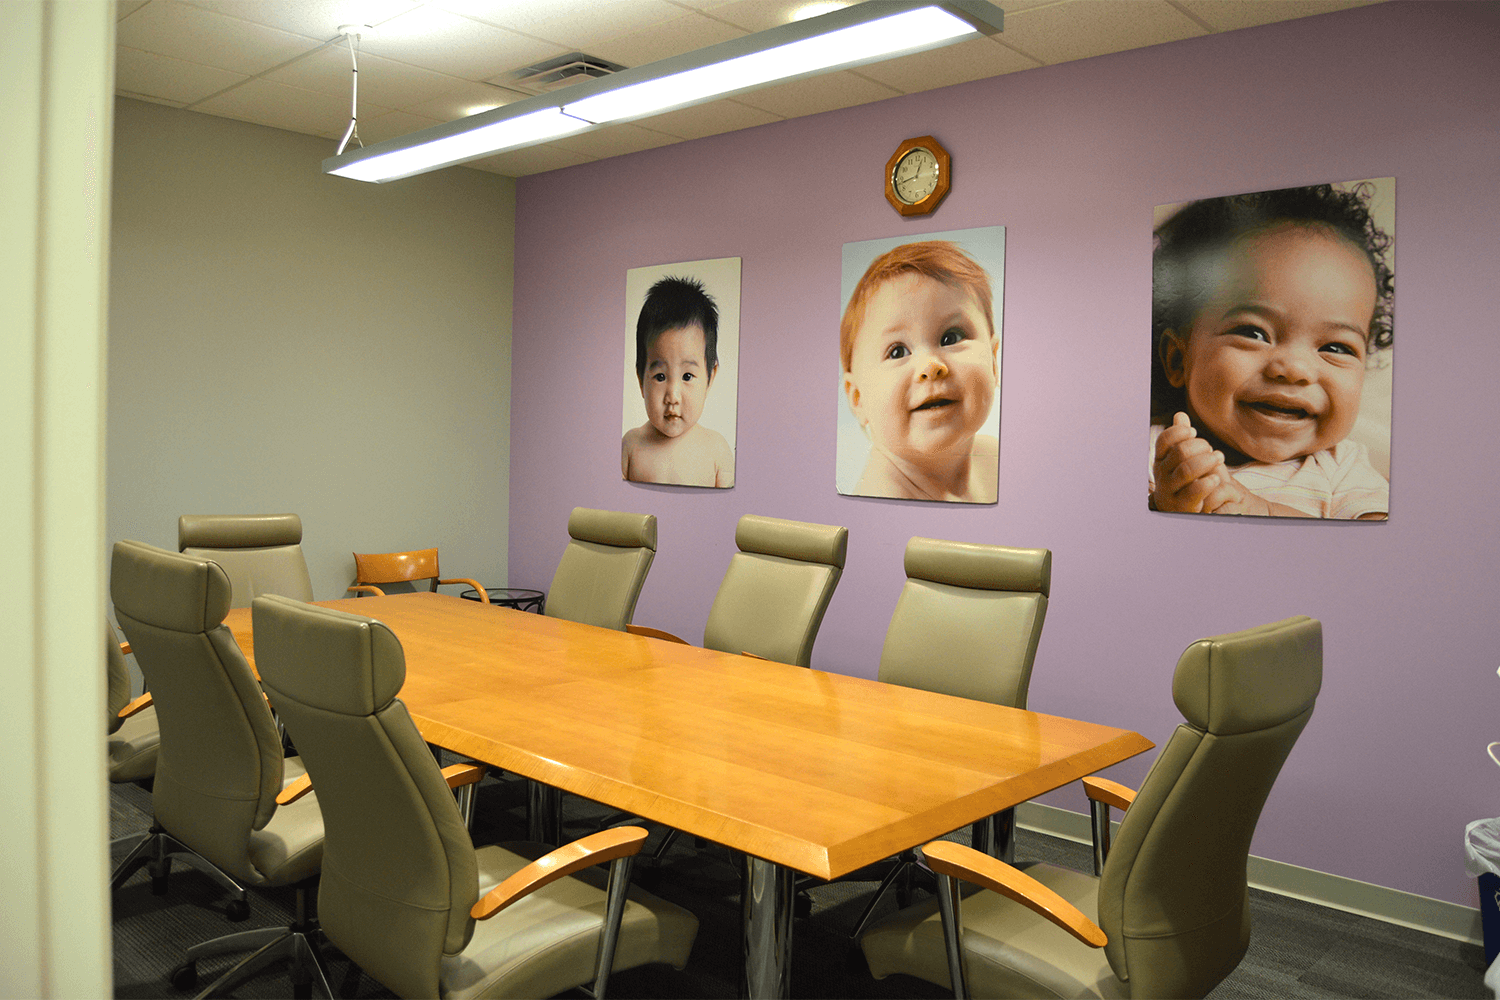 conference room with a table and chairs, and a purple accent wall with photos hanging on it